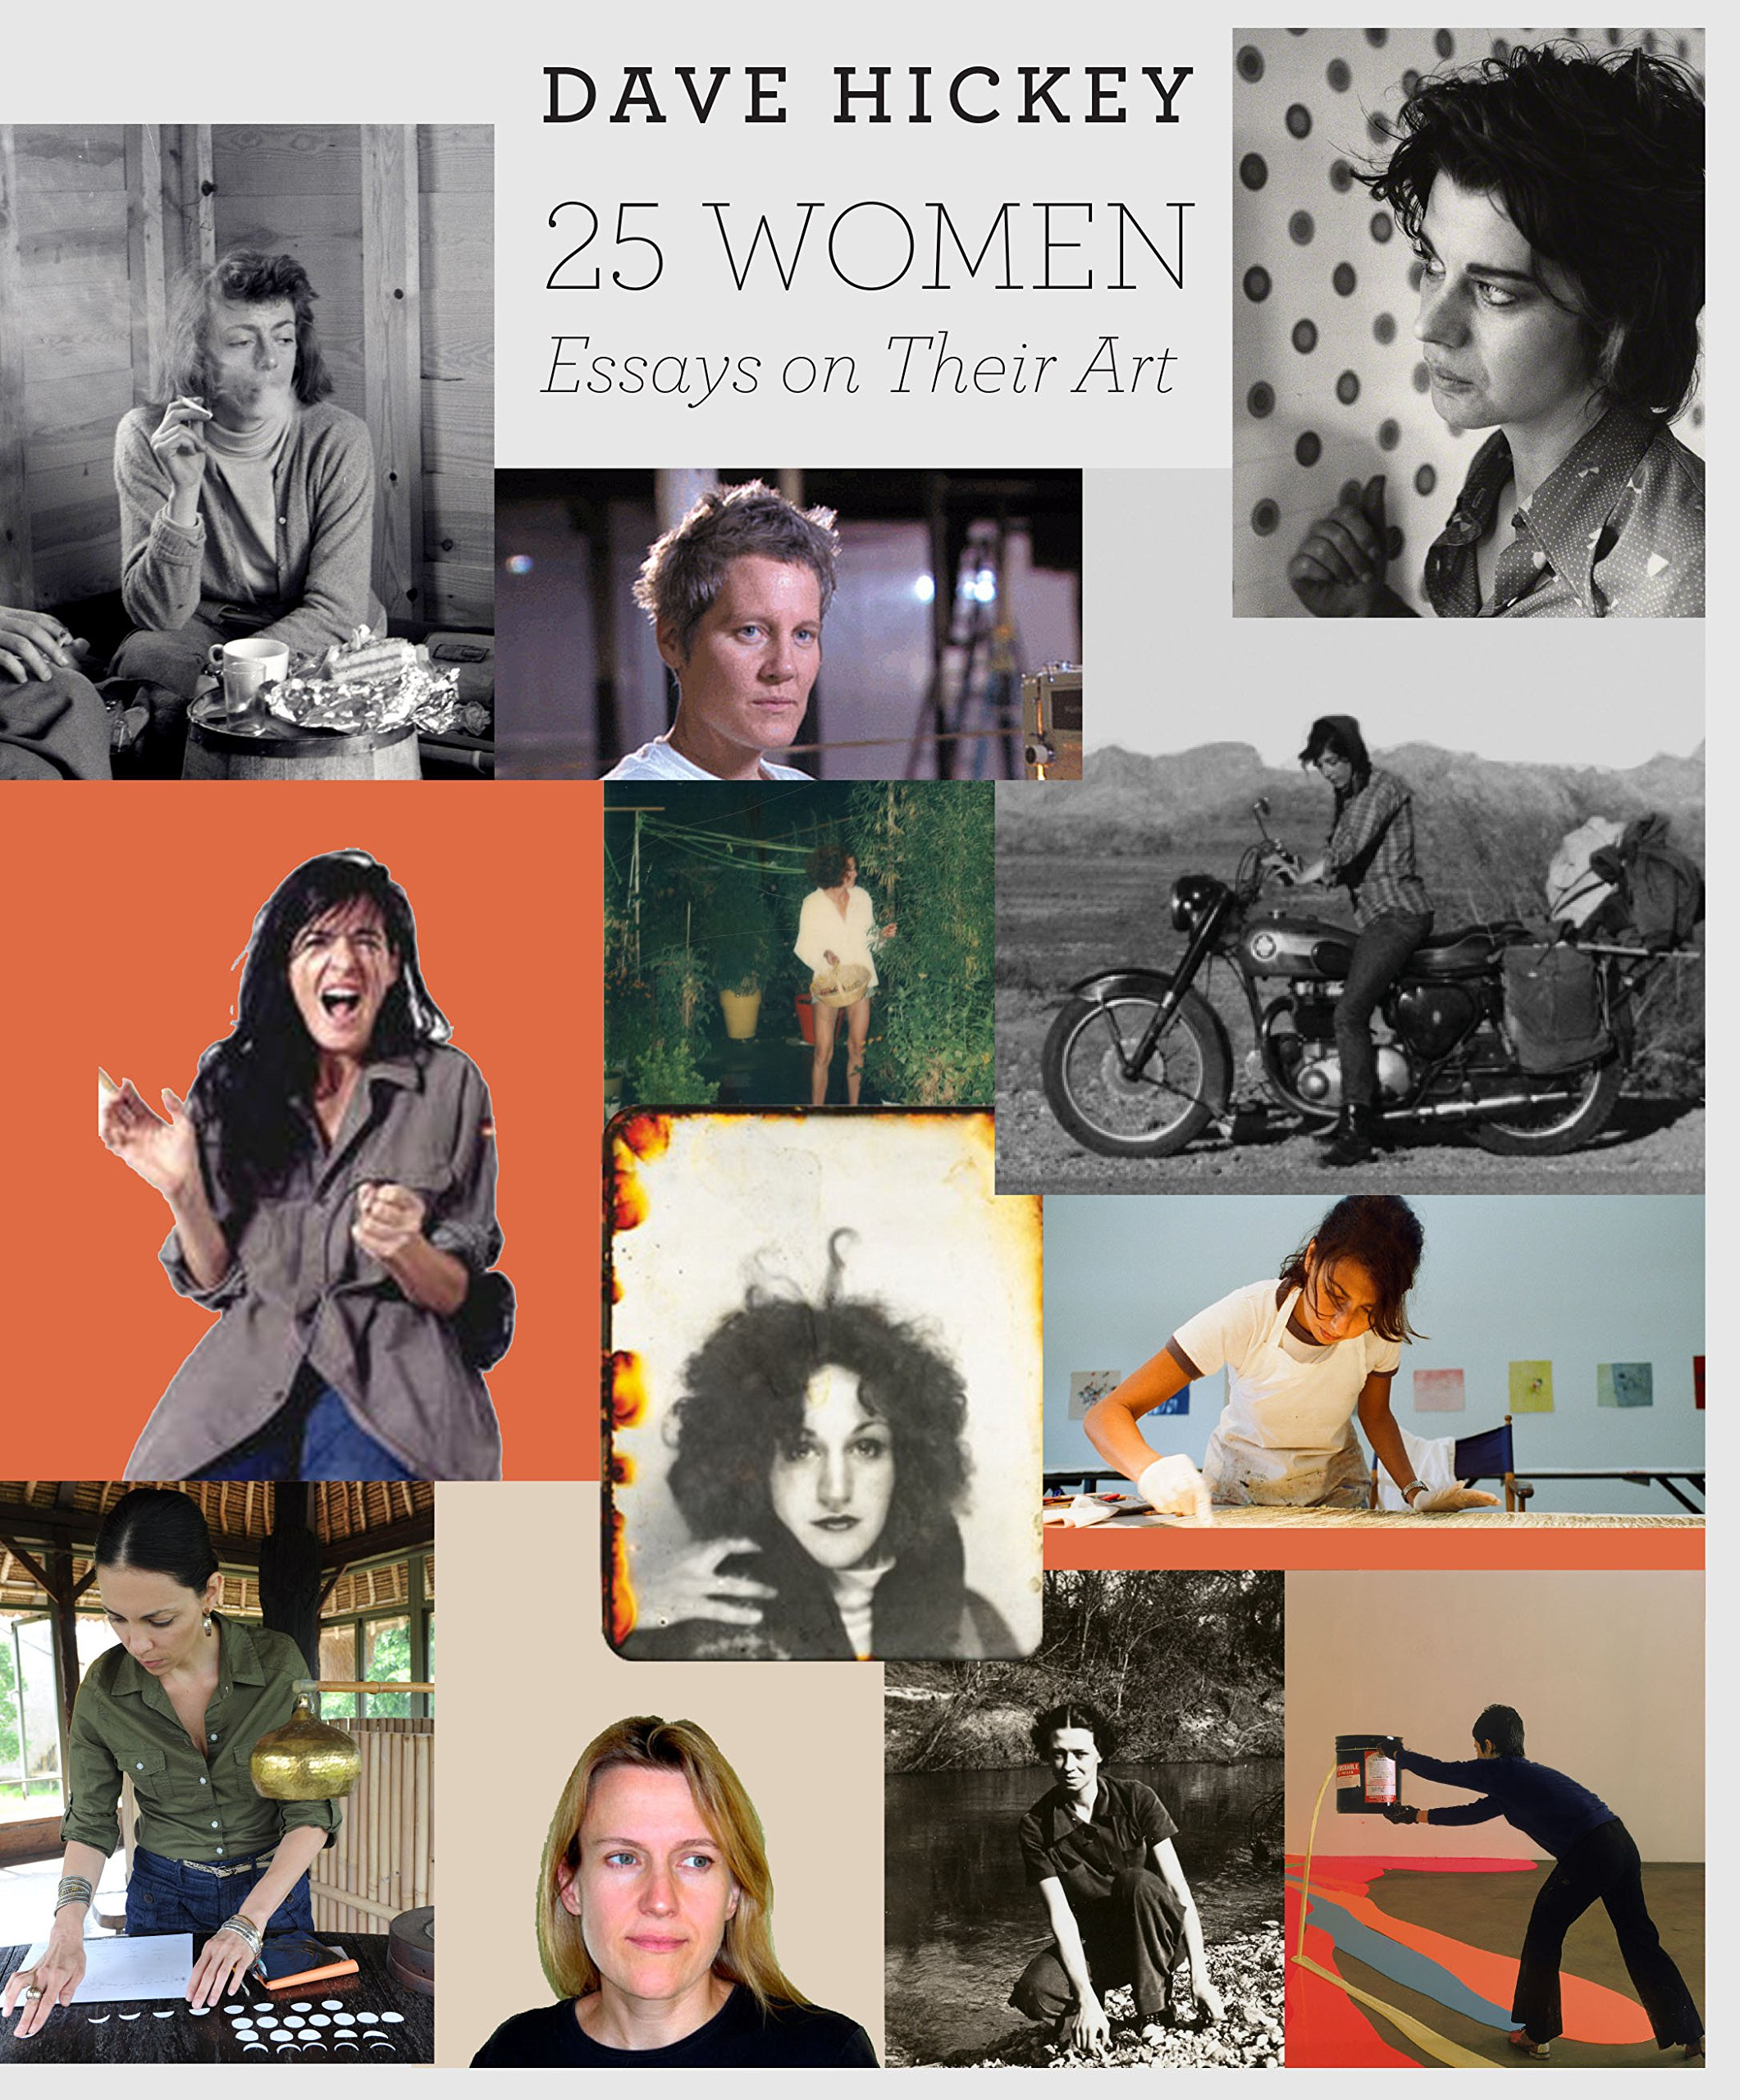 women essays on their art dave hickey amazon 25 women essays on their art dave hickey 9780226333151 com books